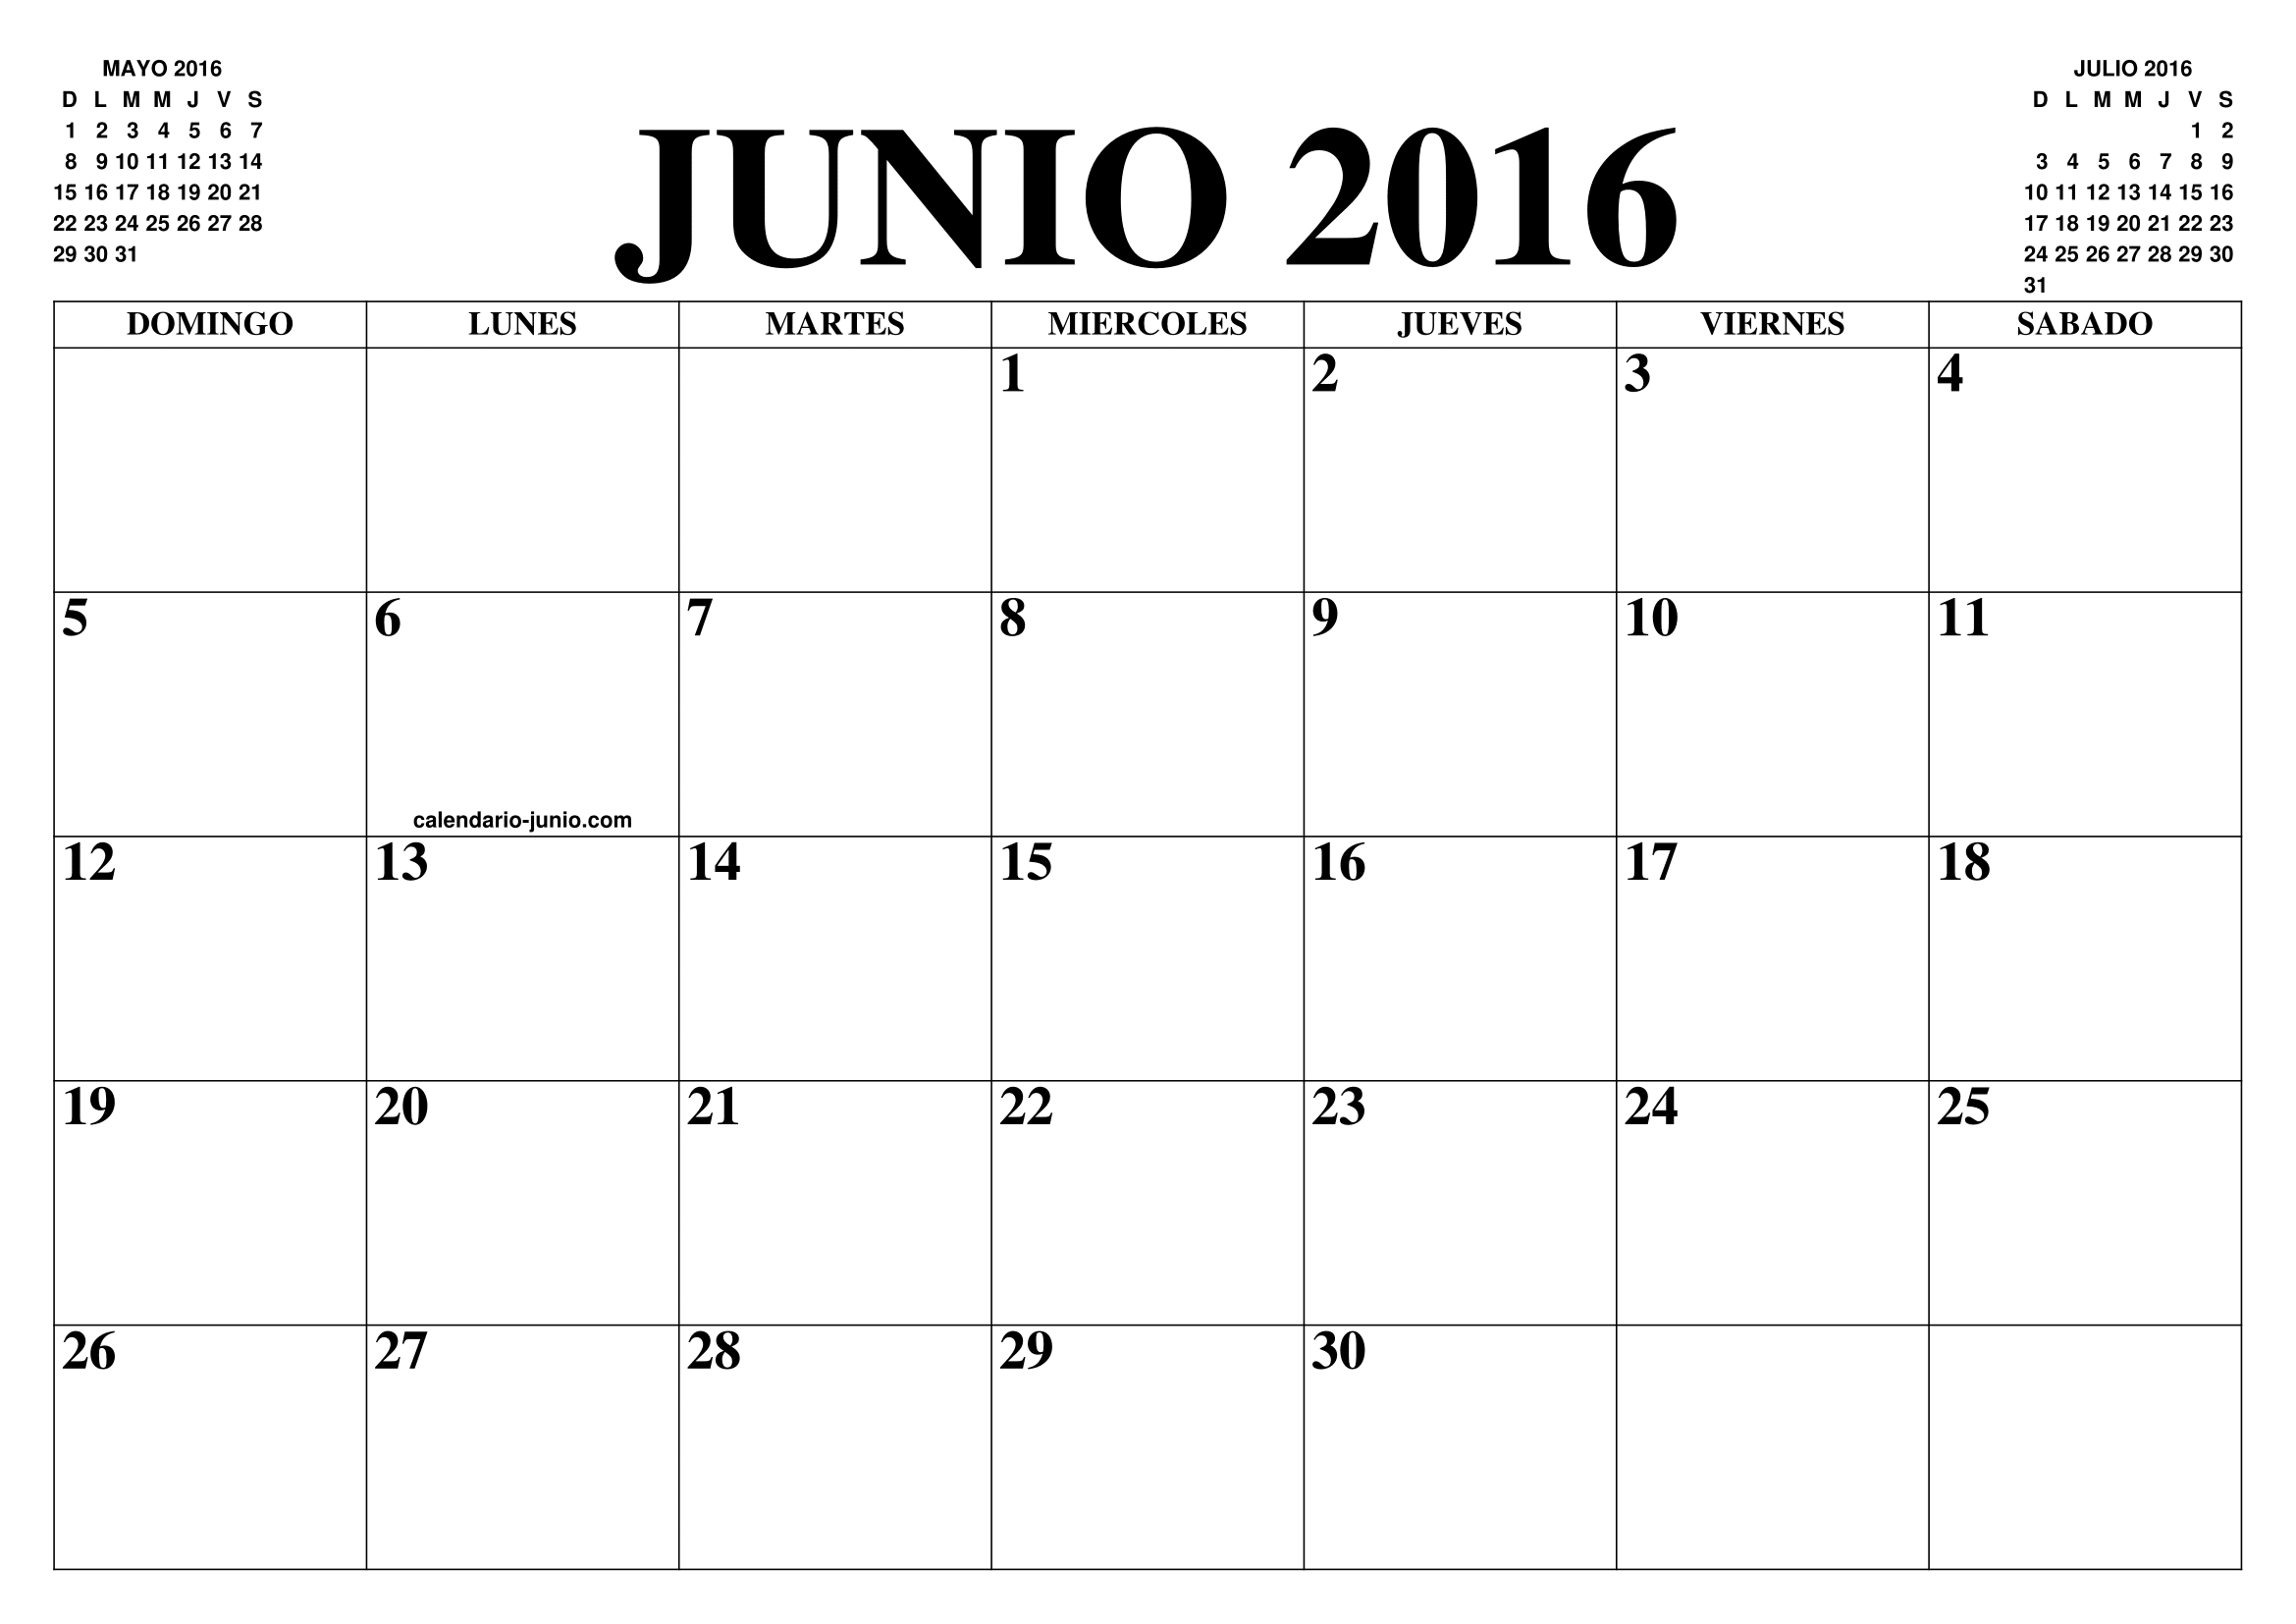 Calendario junio 2016 el calendario junio para imprimir for Calendario junio 2016 para imprimir